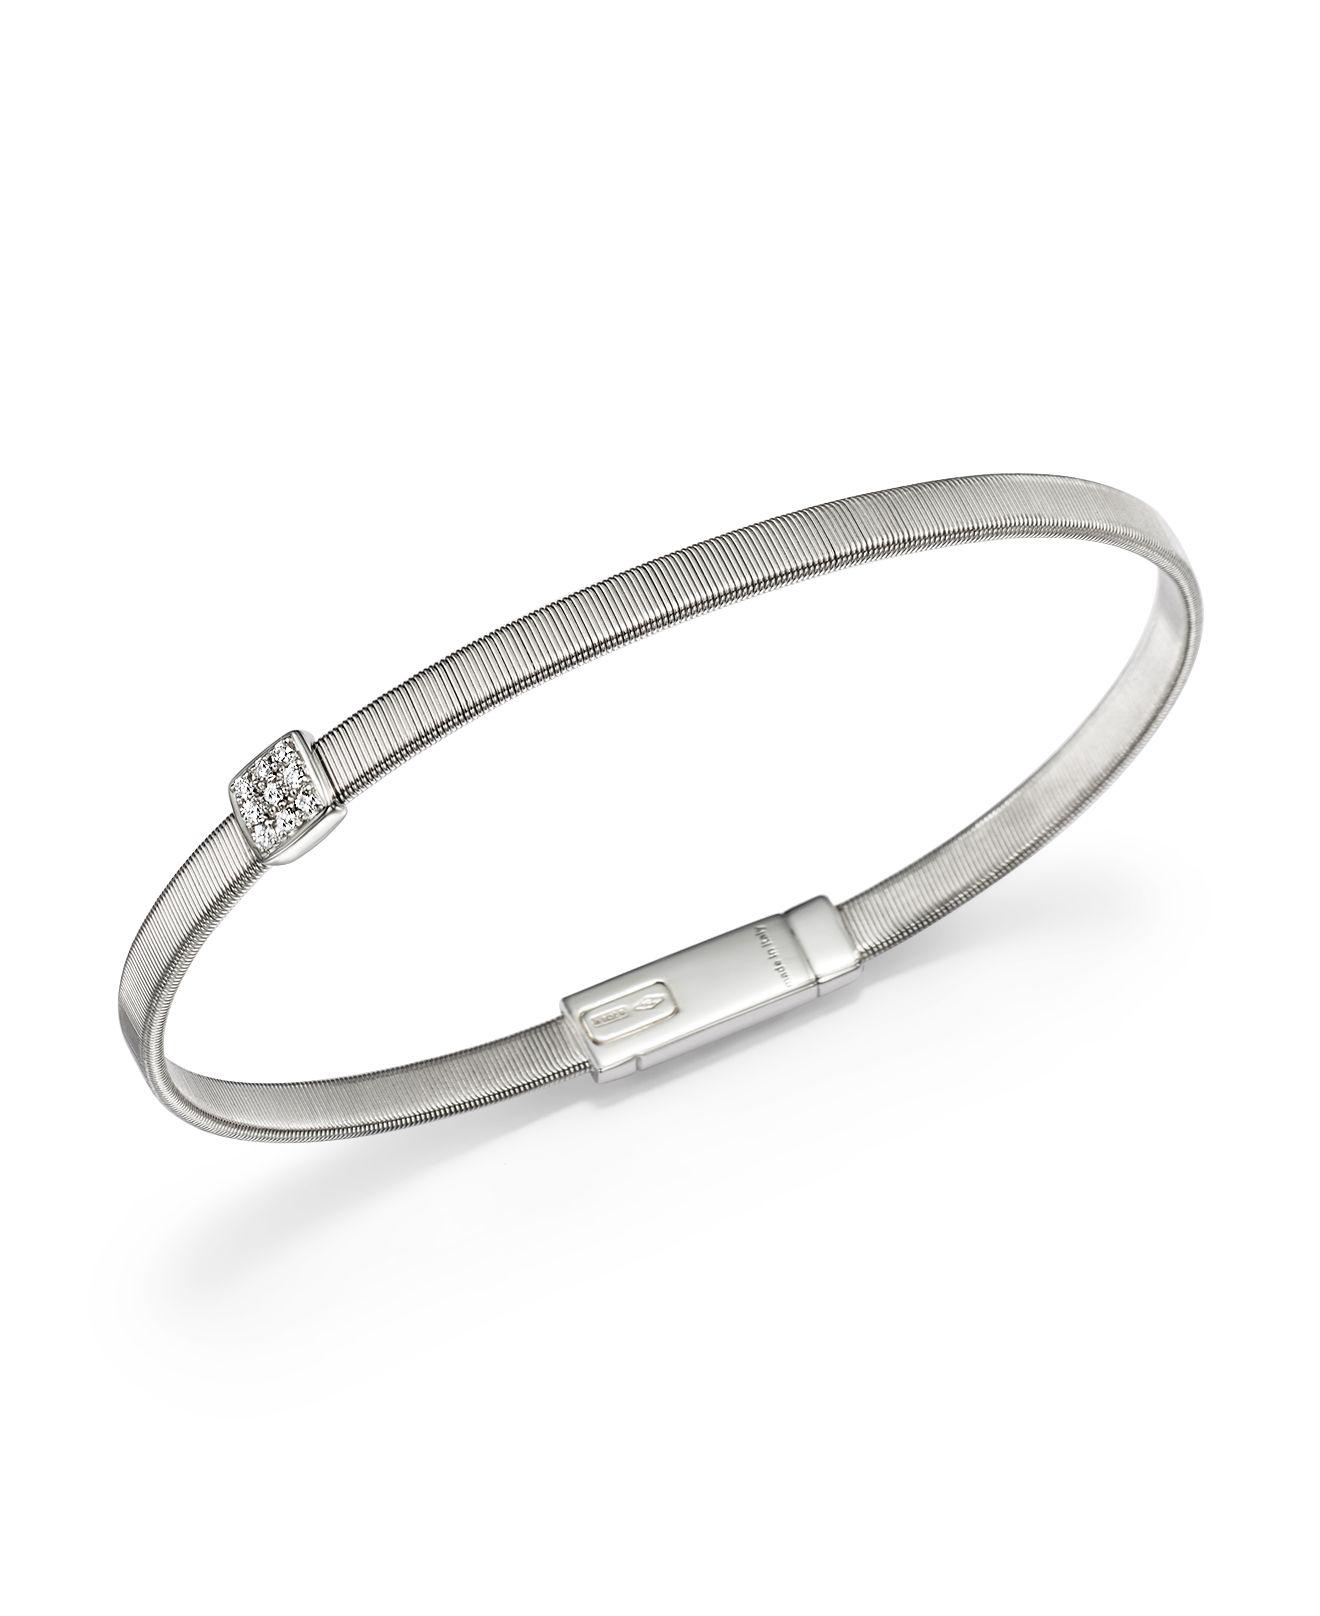 Marco Bicego Masai 18K White Gold Five-Strand Bracelet with Diamond Stations